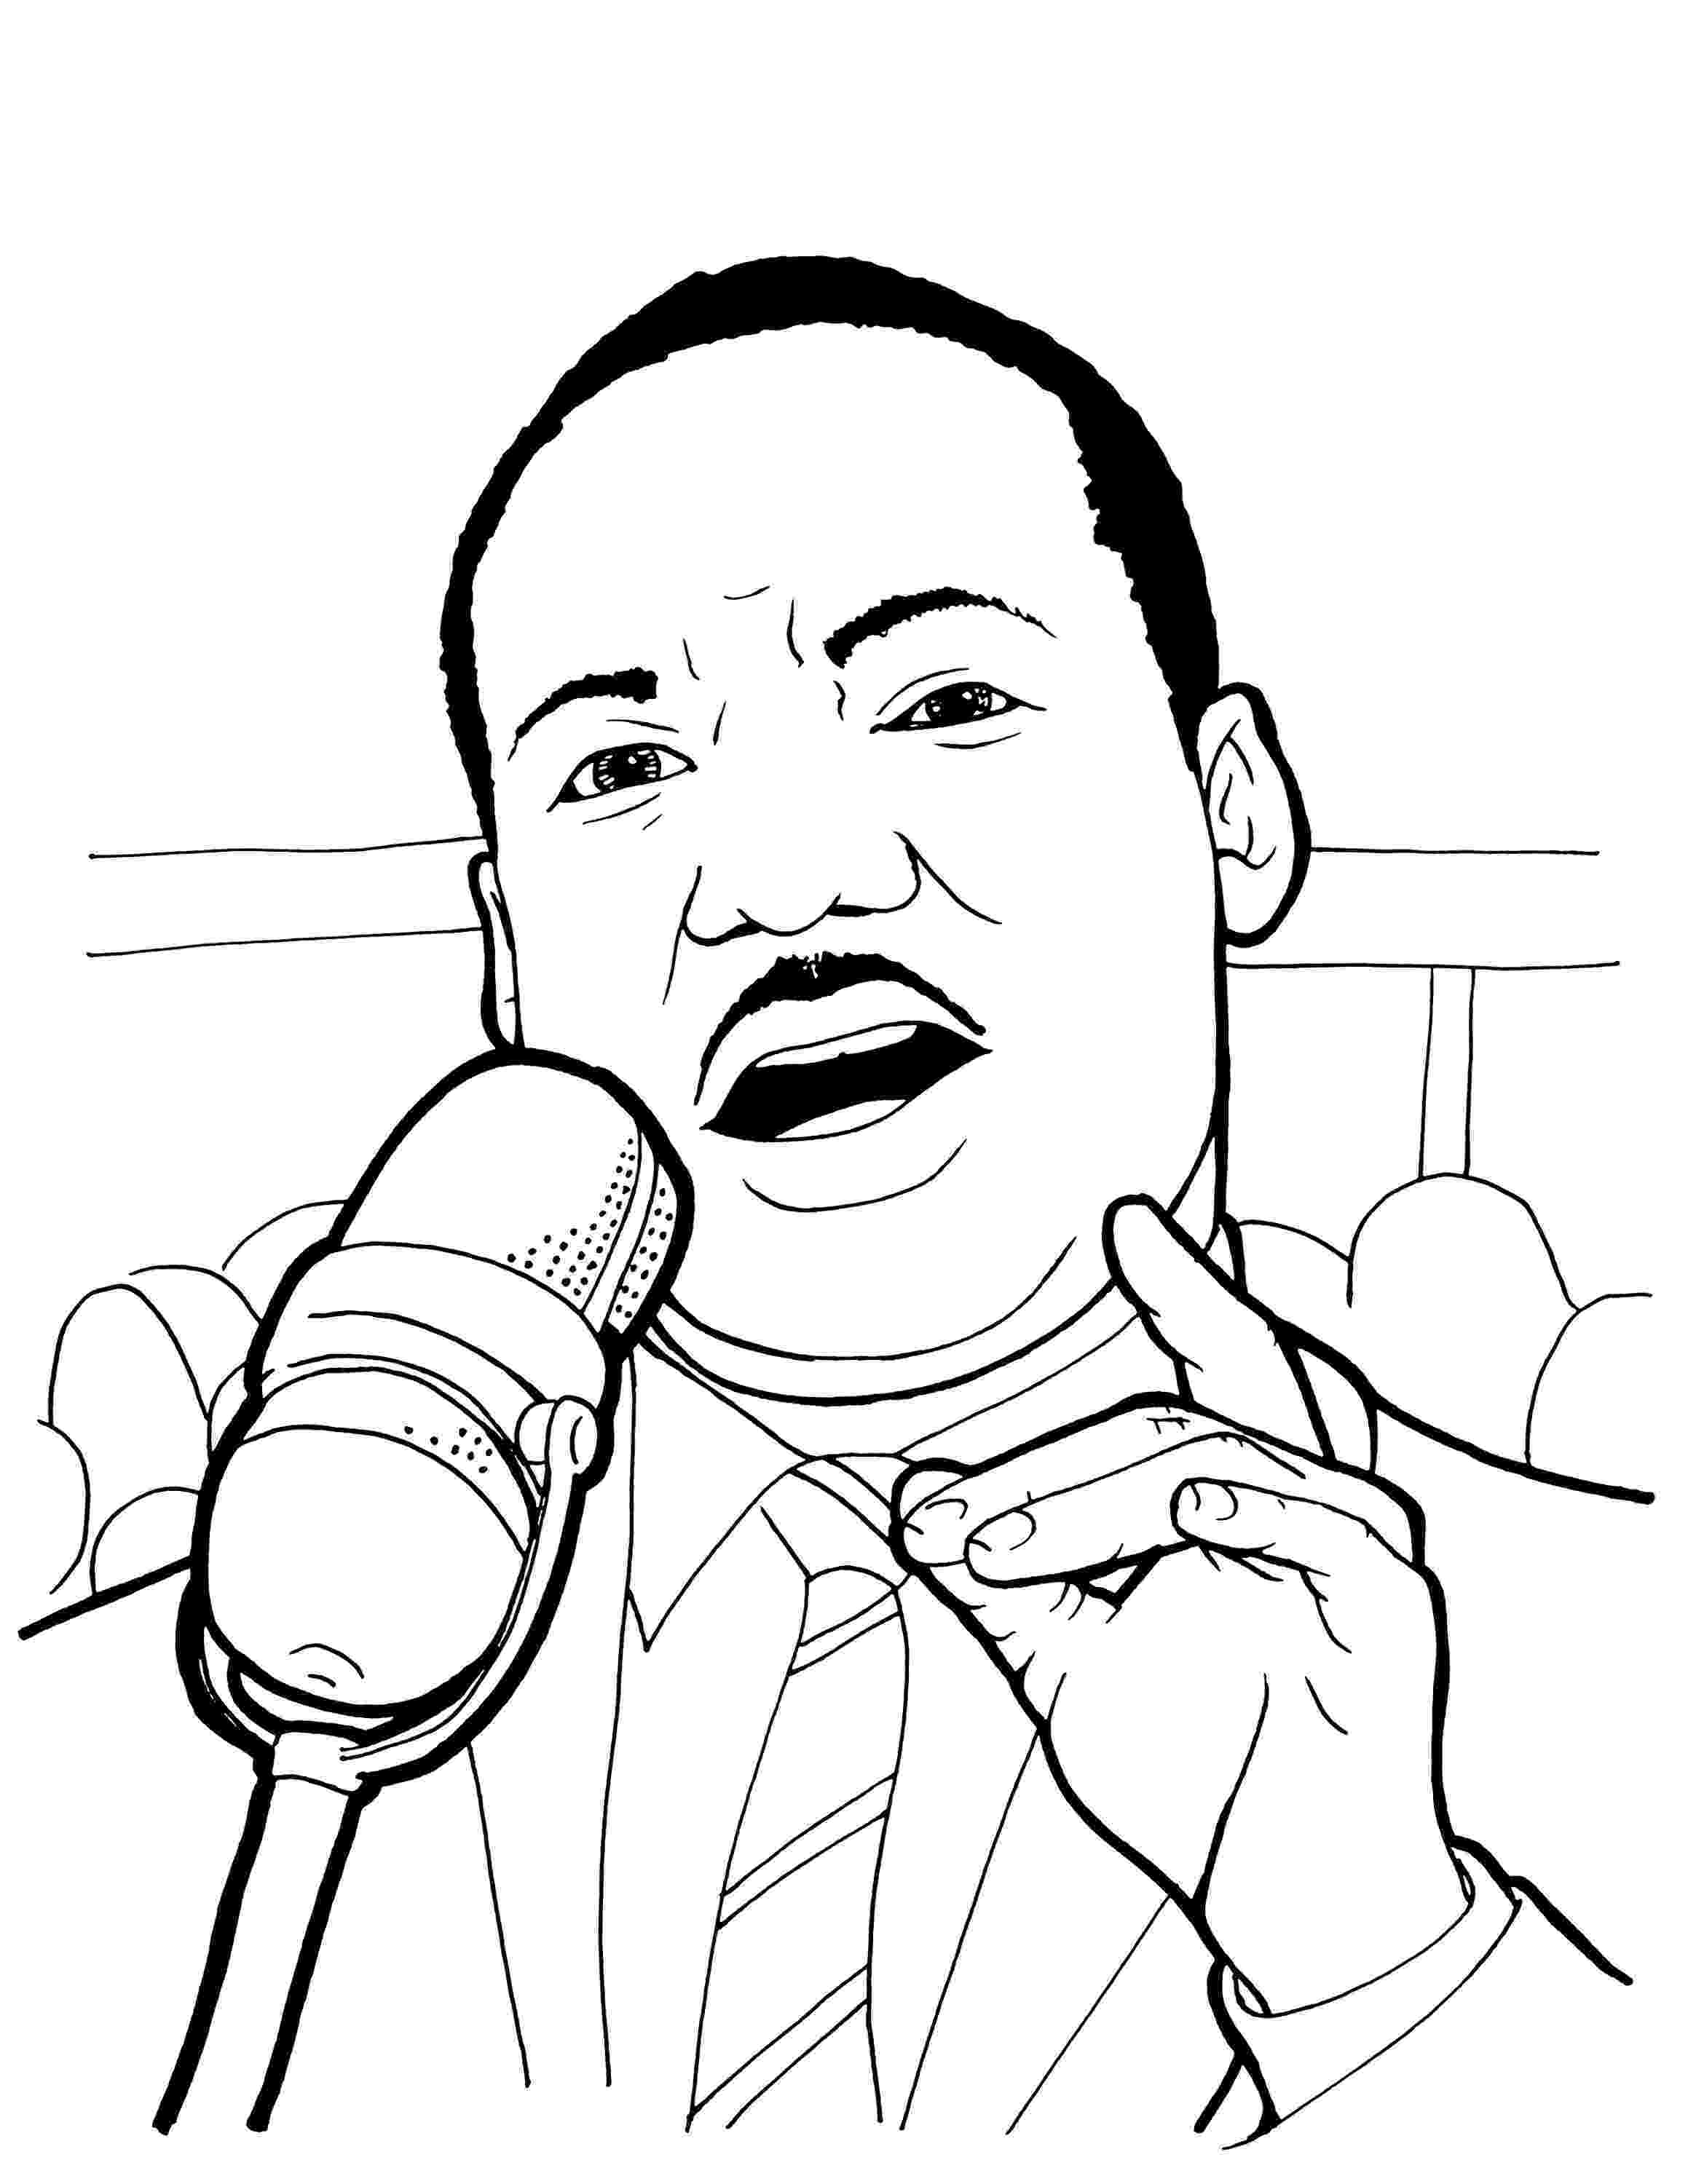 dr king coloring pages printable martin luther king jr coloring pages and worksheets best pages coloring printable king dr